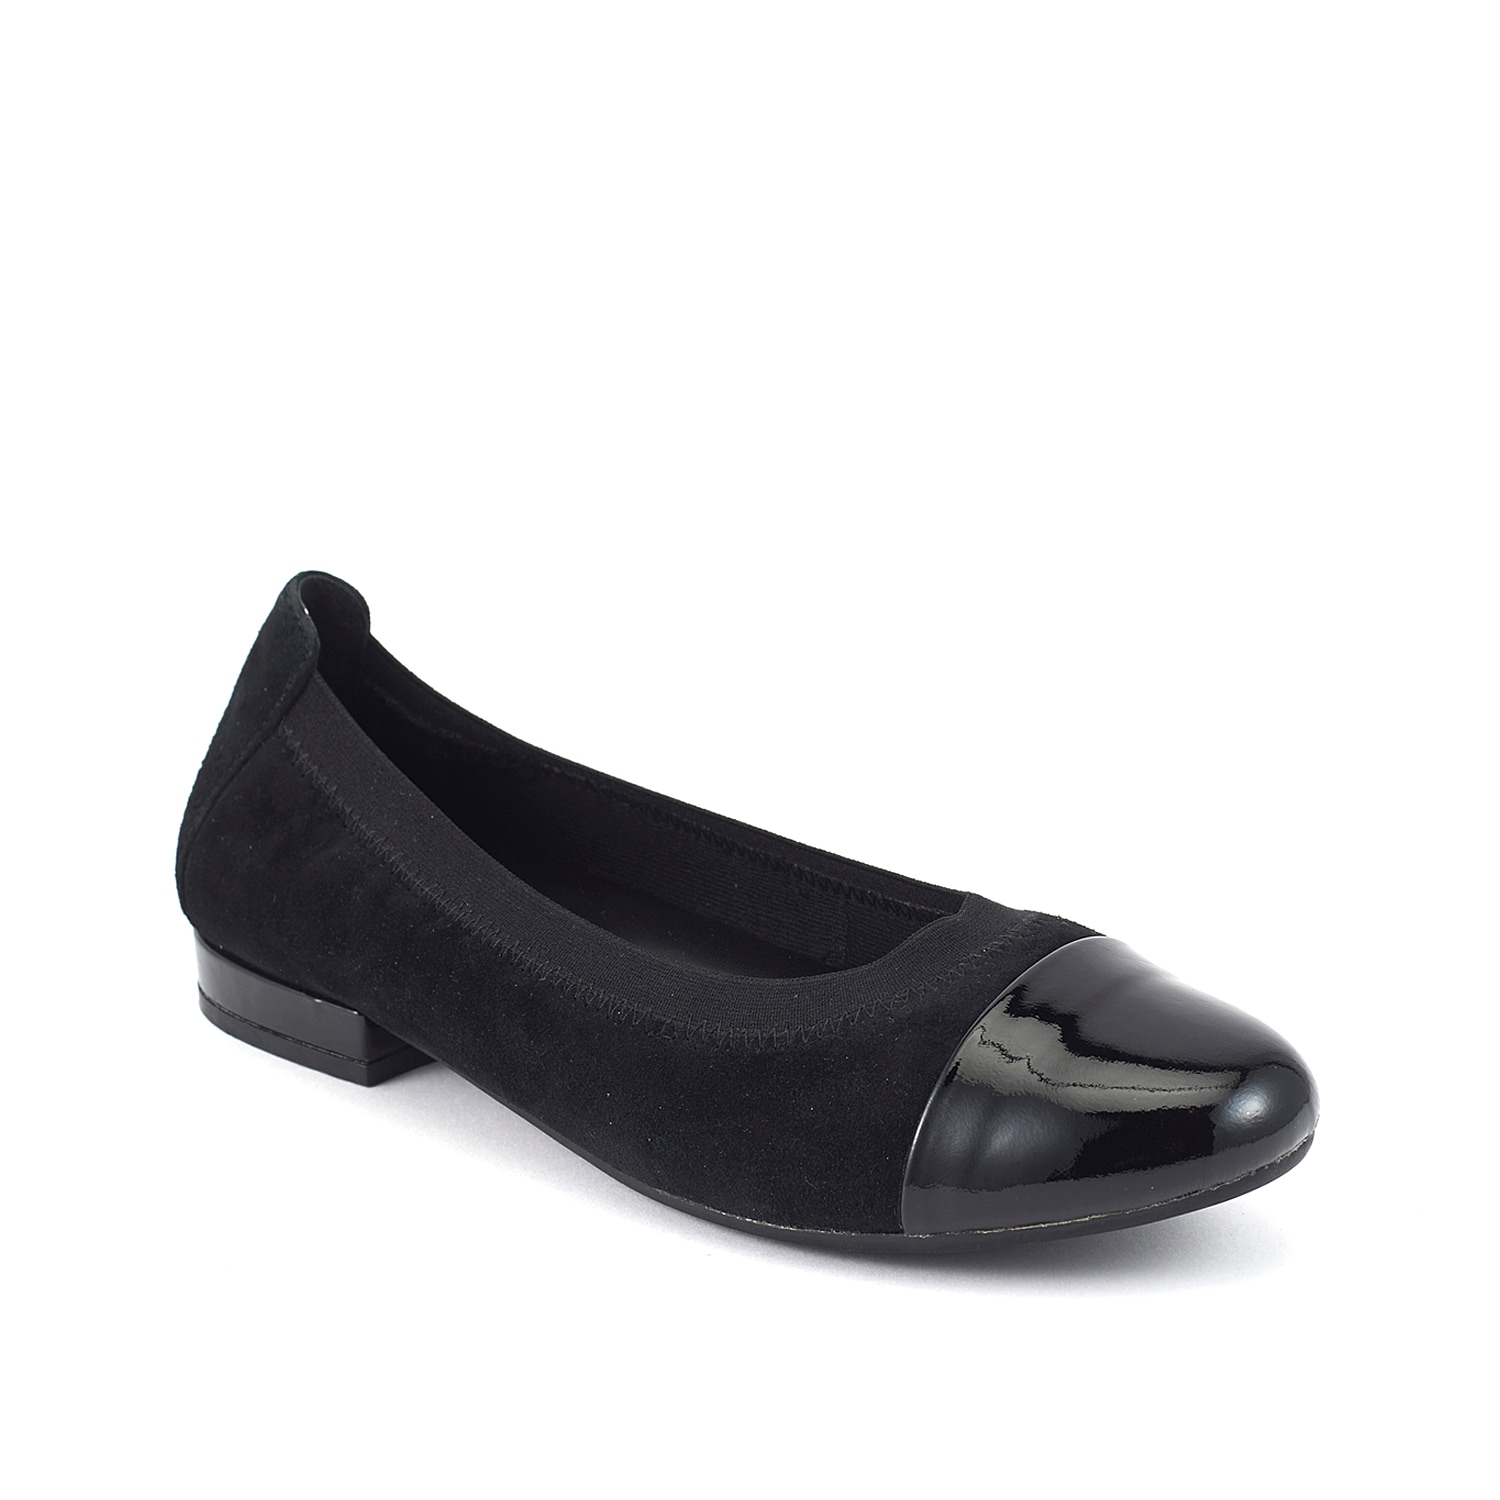 The Nikki ballet flat from David Tate will express your favorite style. This slip-on is fashioned with an elasticized topline and a rubber sole for durable and flexible steps.